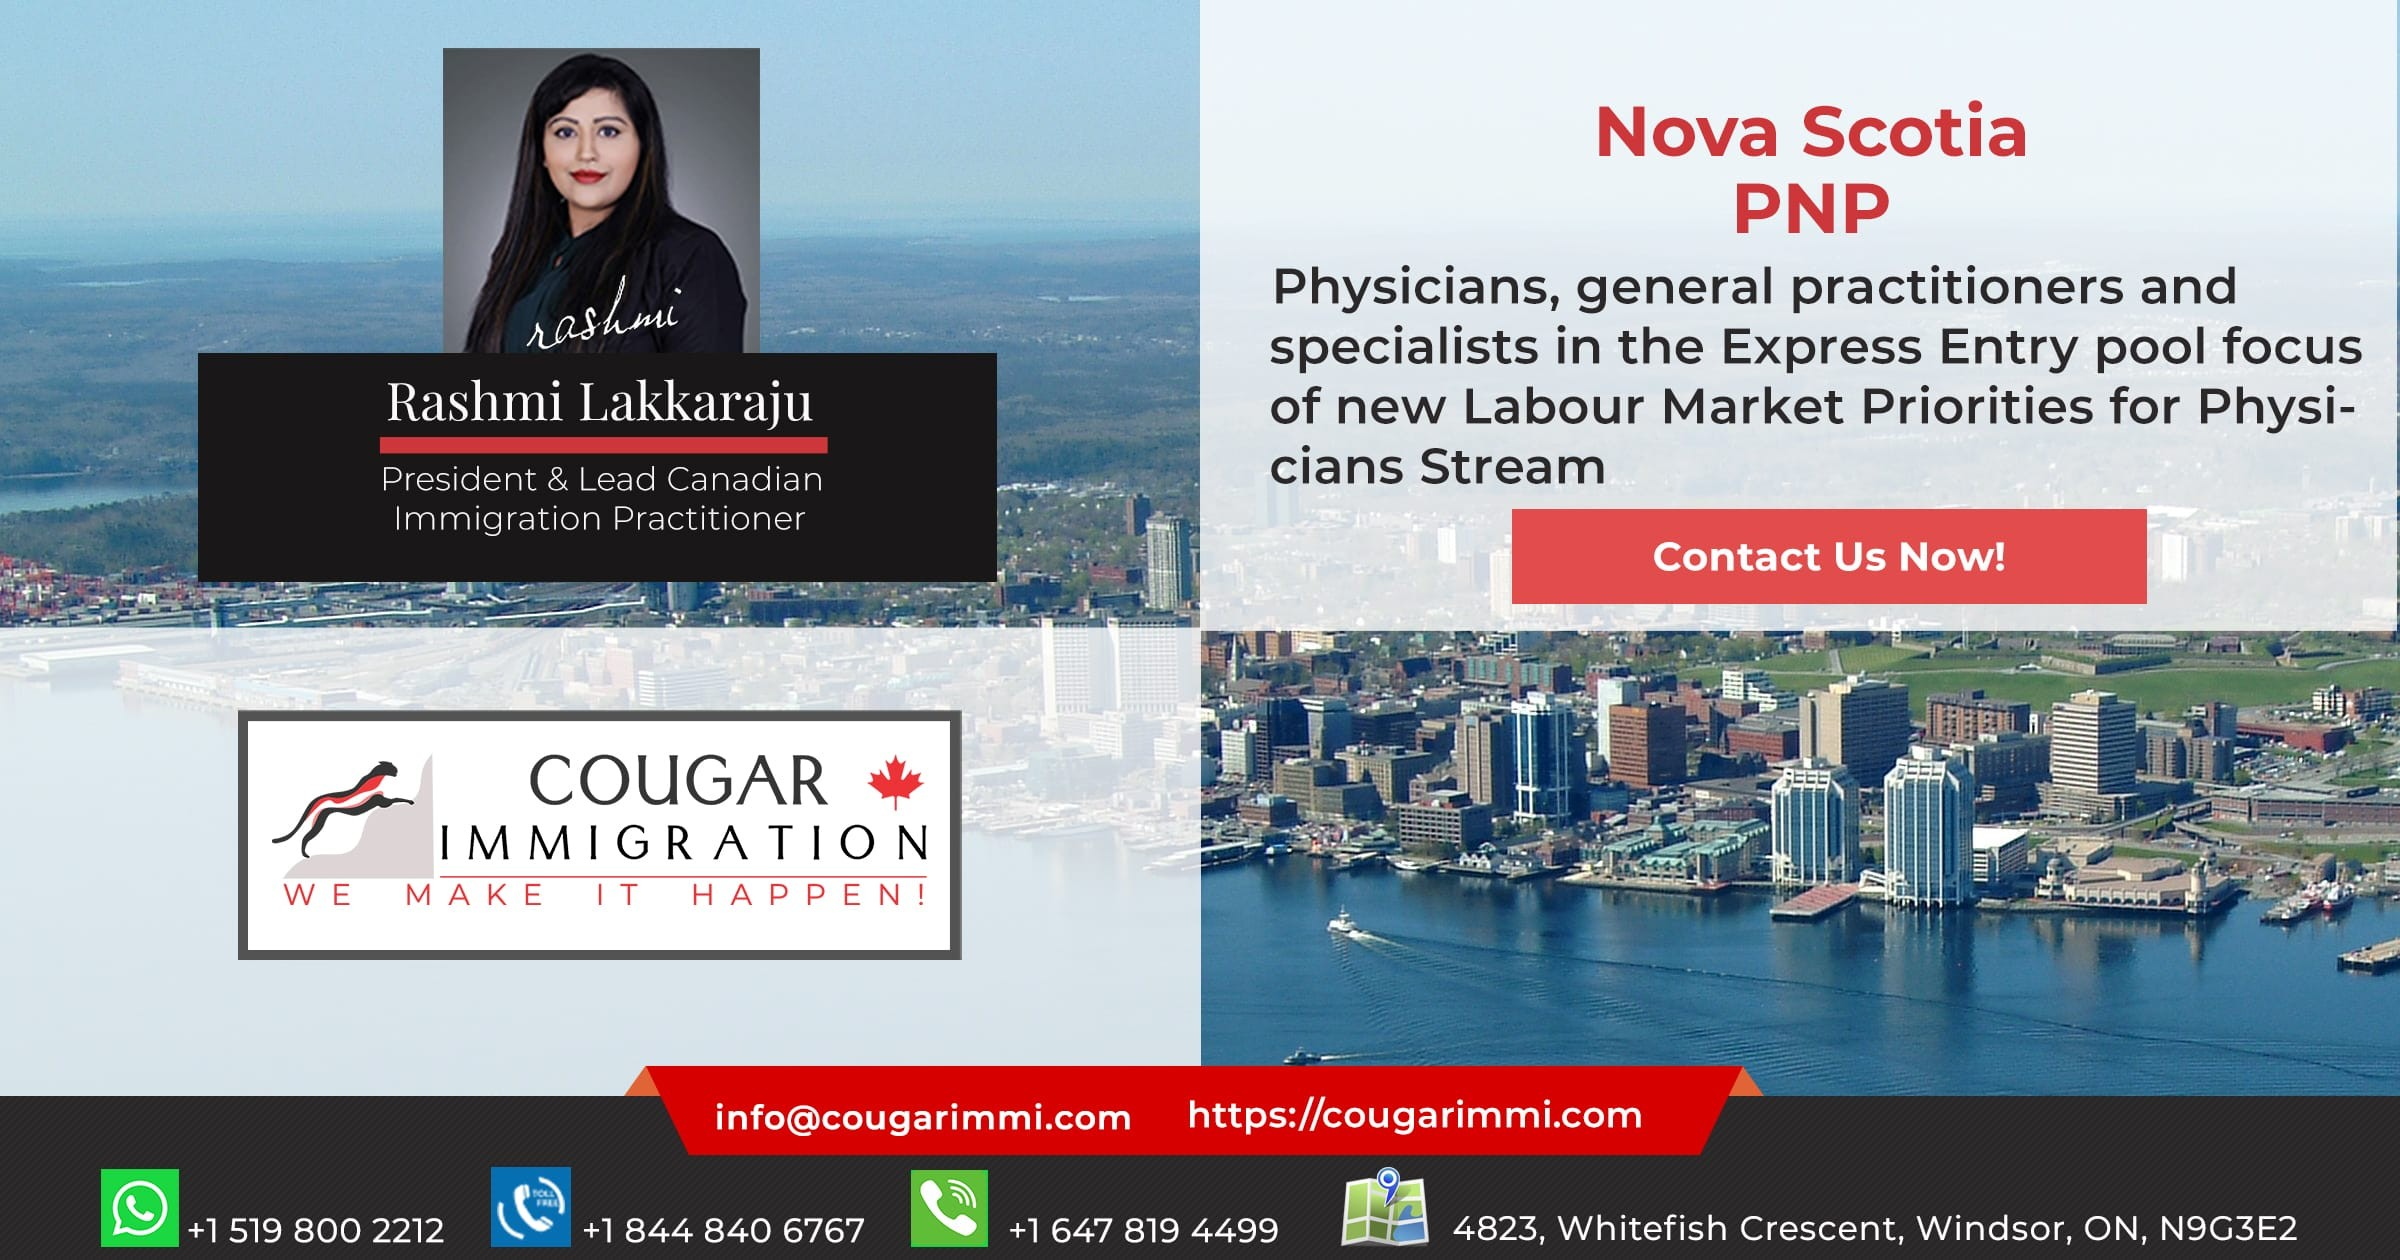 Nova Scotia creates new pathway for physicians looking to immigrate to Canada thumbnail